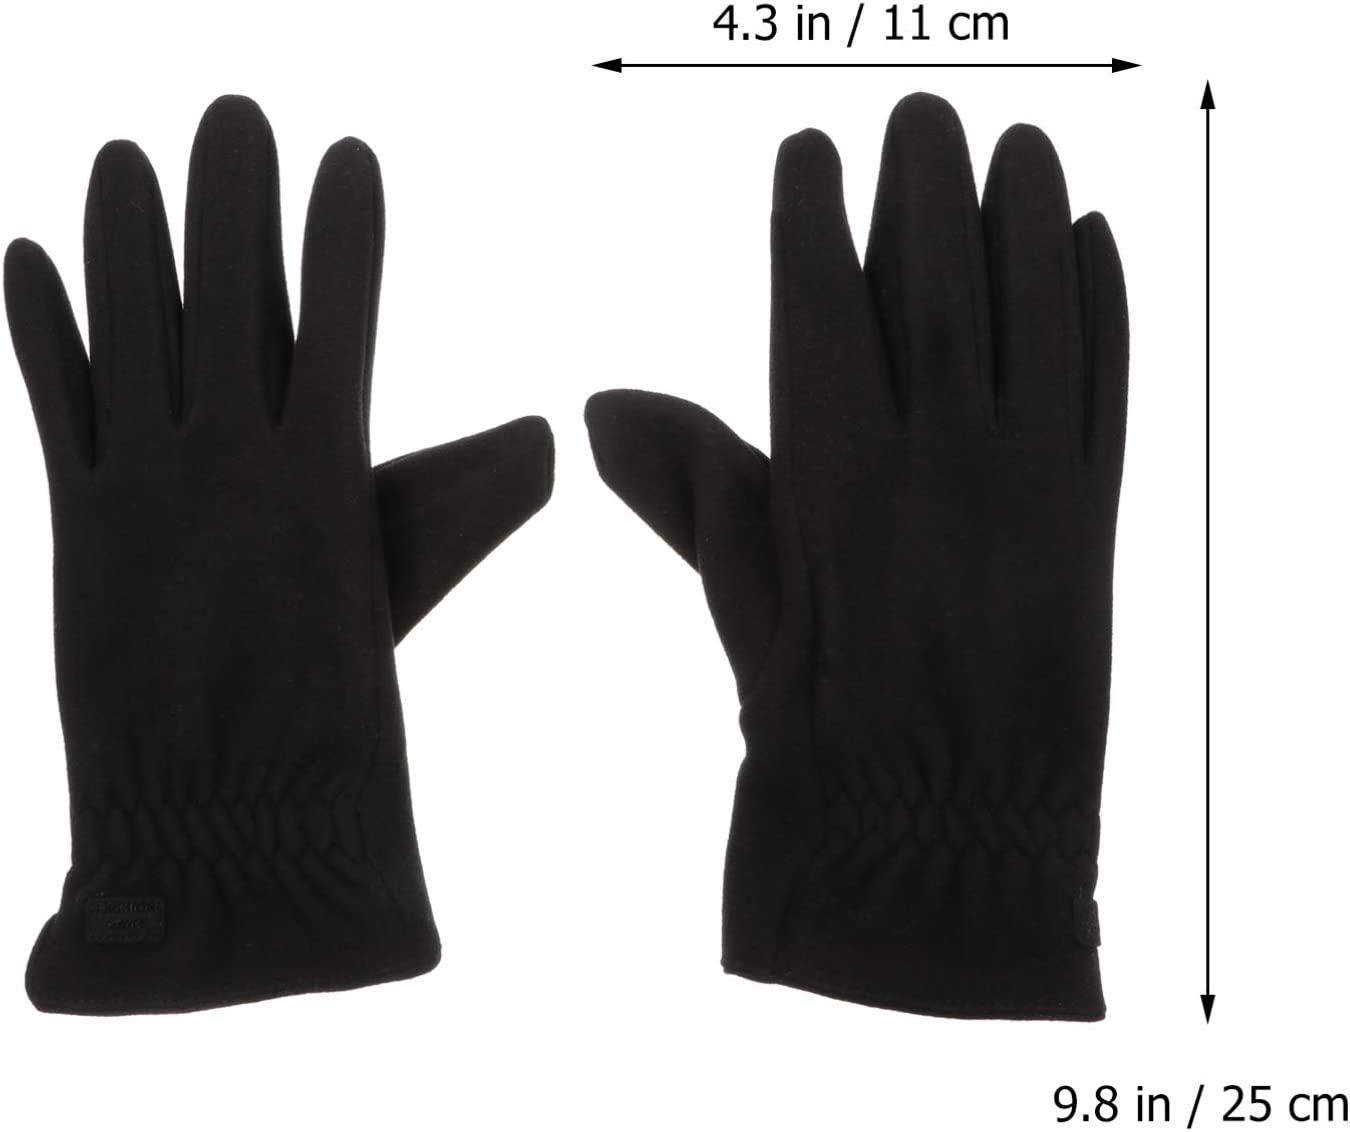 Garneck Winter Touch Screen Gloves Cold Weather Warm Mittens Winter Workout Running Cycling Training Ski Driving Sport Gloves for Woman Man Winter Outside Anti Slip Gloves